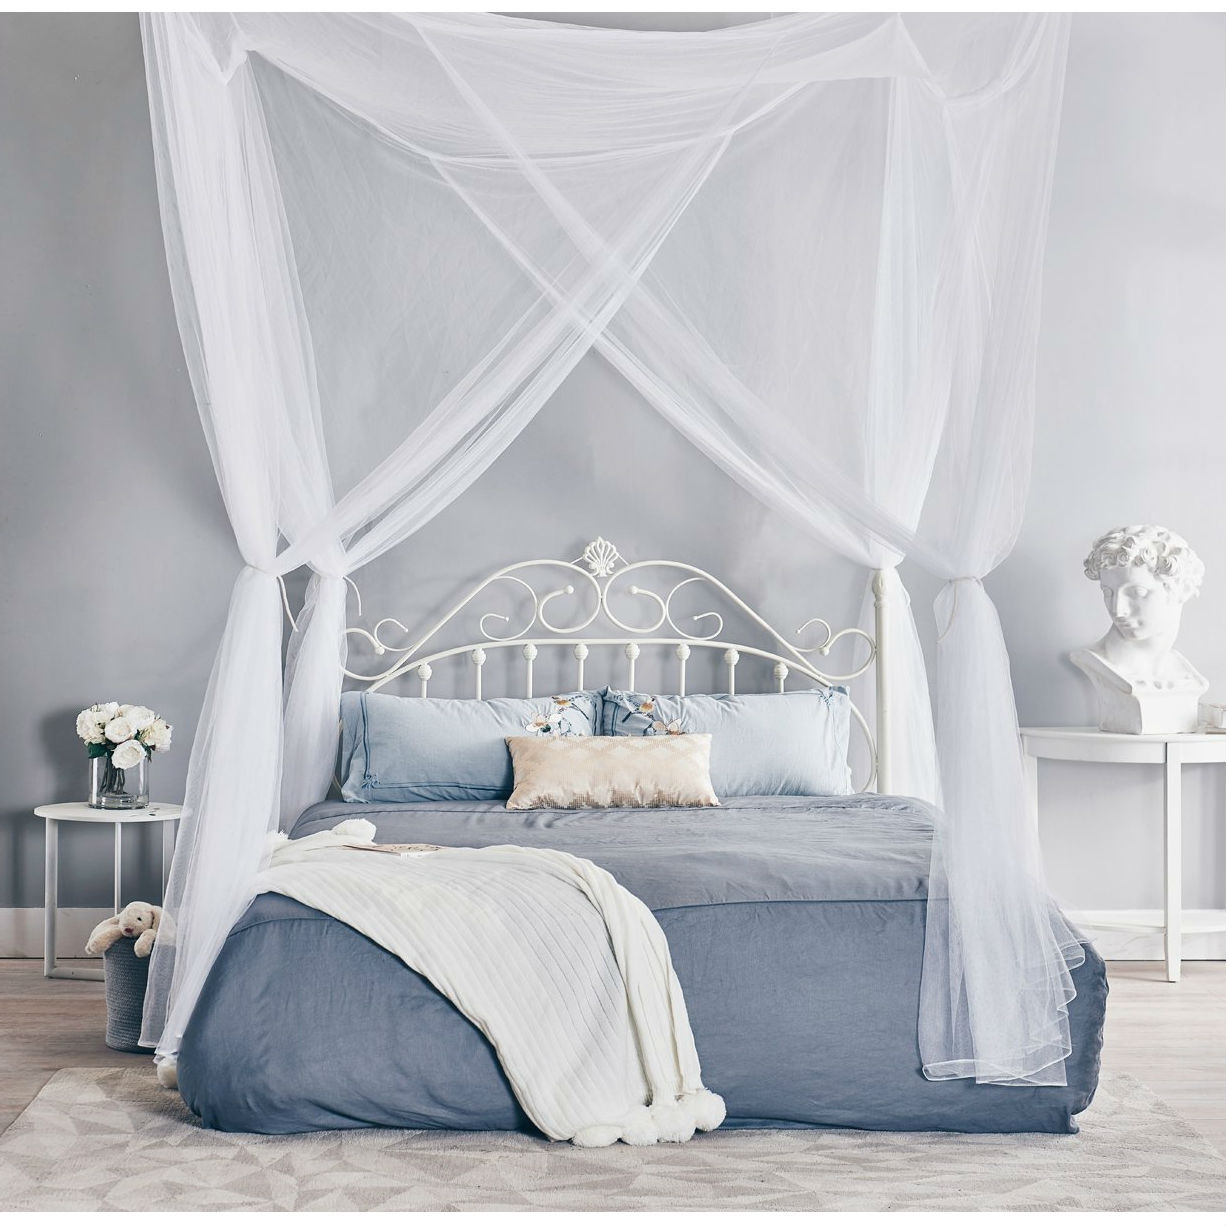 ea40ba74e7b5a White 4-Post Bed Netting Mosquito Net for Canopy Beds - Fits size Full Queen  and King